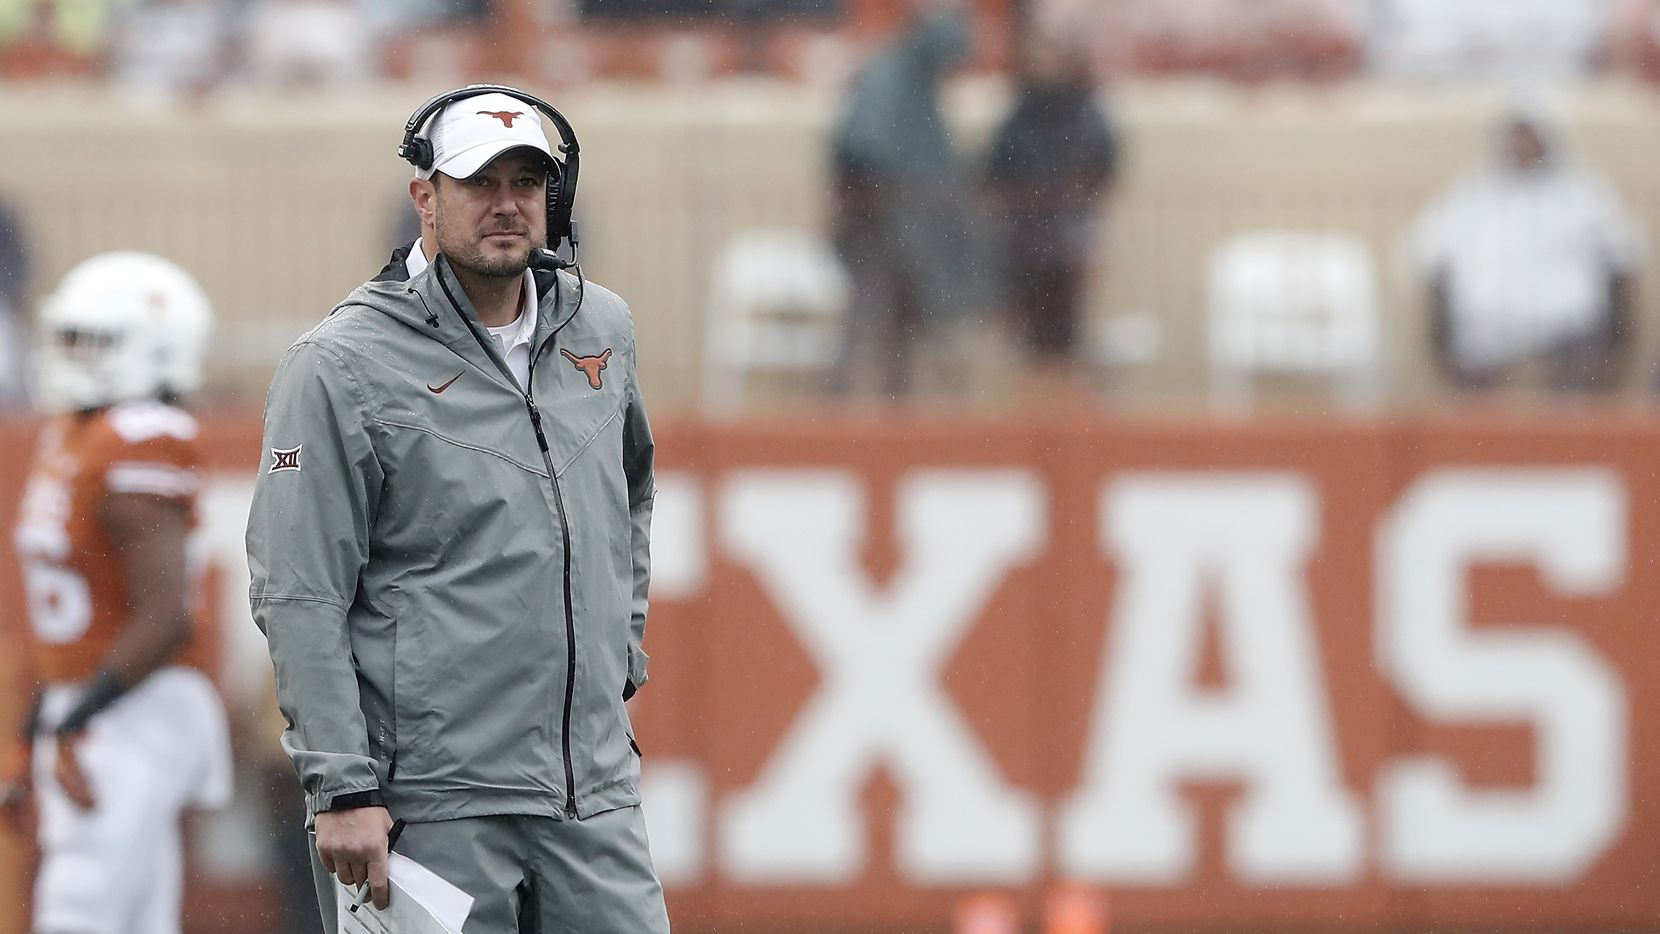 AUSTIN, TX - NOVEMBER 29:  Head coach Tom Herman of the Texas Longhorns looks at the scoreboard in the second half against the Texas Tech Red Raiders at Darrell K Royal-Texas Memorial Stadium on November 29, 2019 in Austin, Texas.